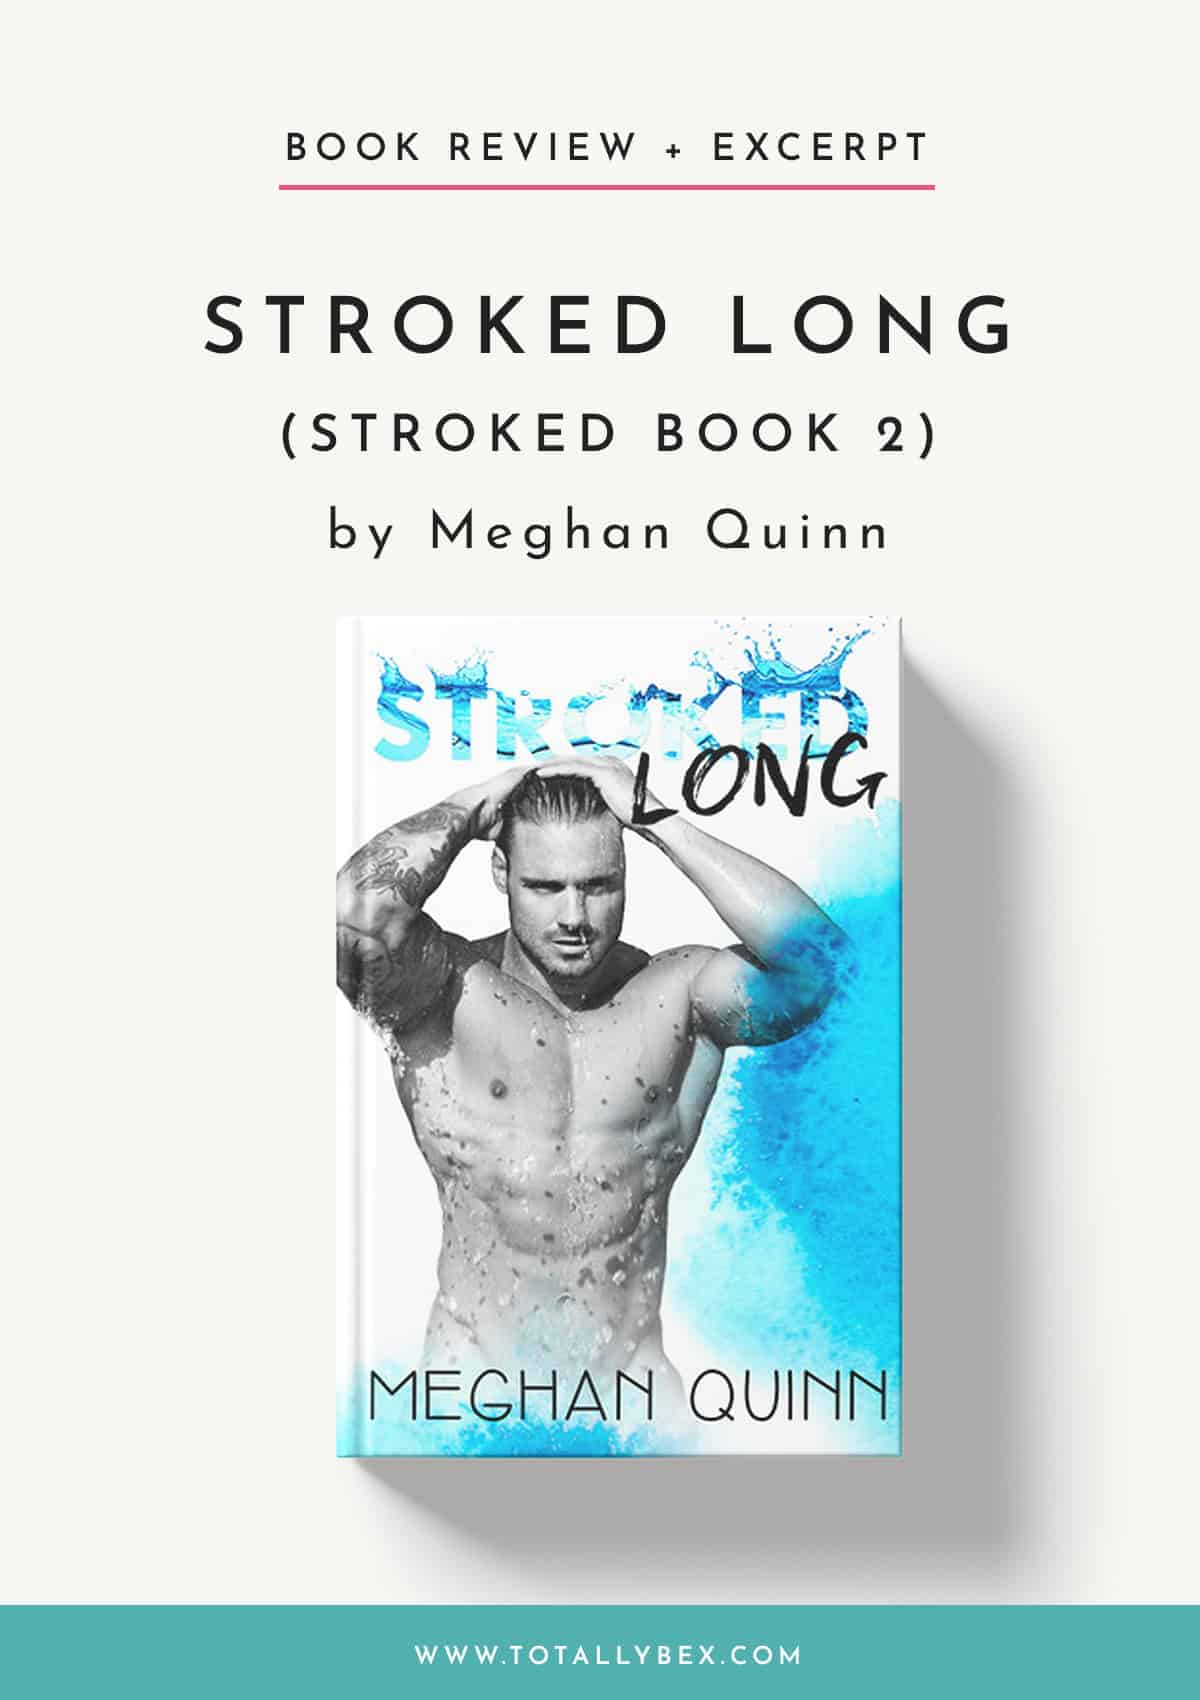 Stroked Long by Meghan Quinn-Book Review